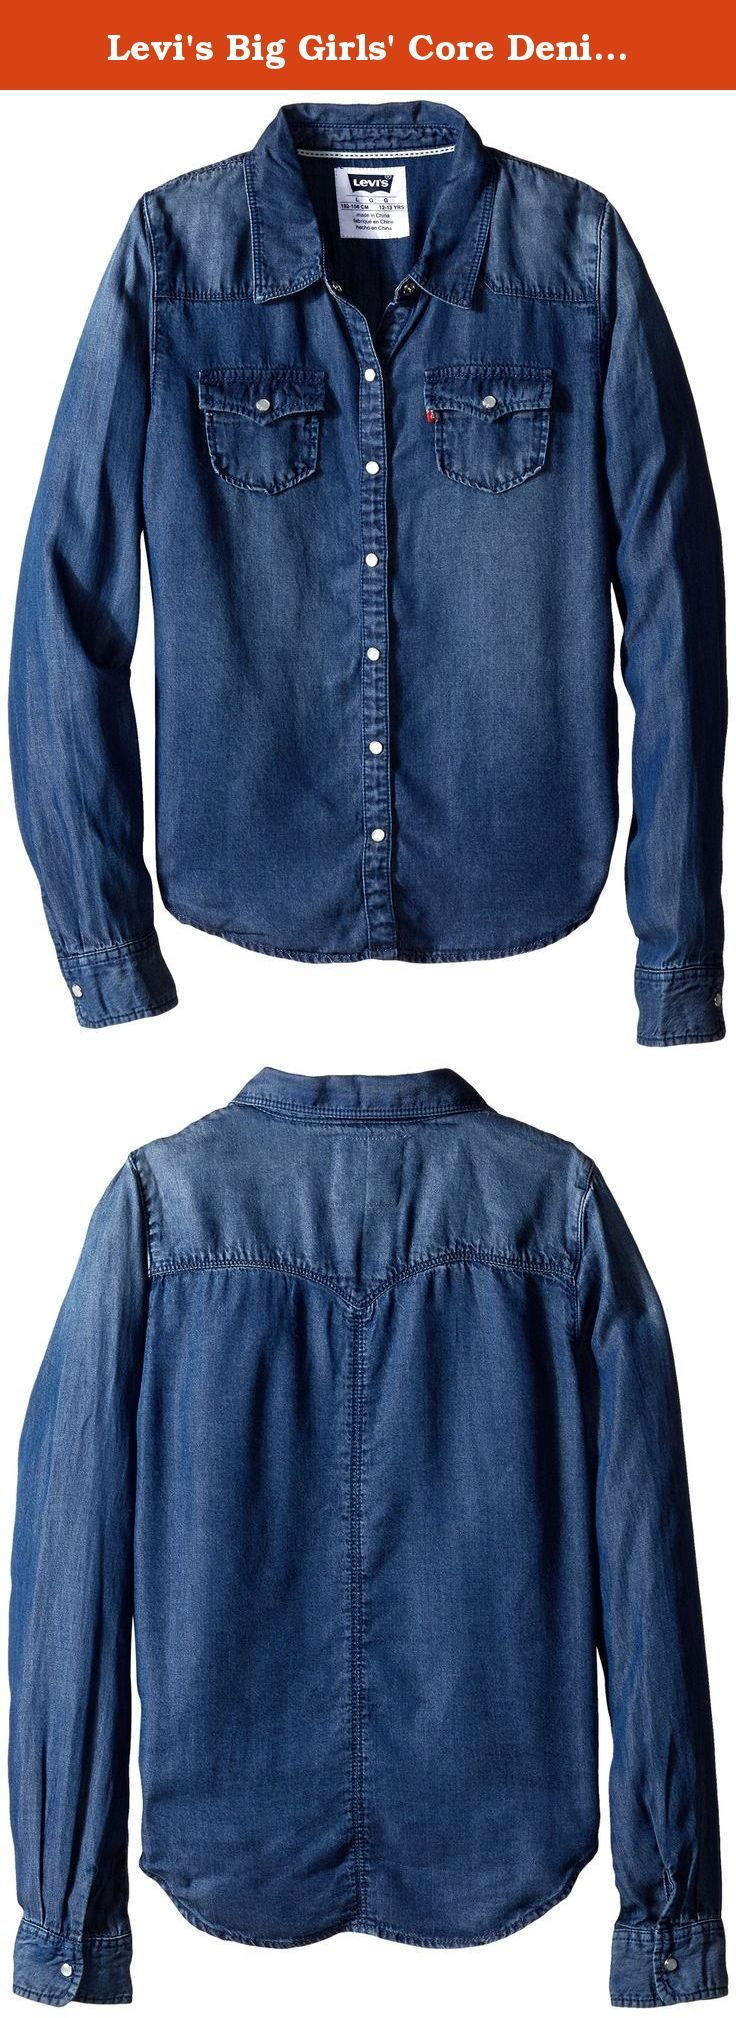 Levi's Big Girls' Core Denim Shirt, Rebel Blue, X-Large. The classic button-up has never looked so good. Levi's core denim shirt for girls is available in your choice of color and wash ranging from classic and authentic styles to bold and unique looks.